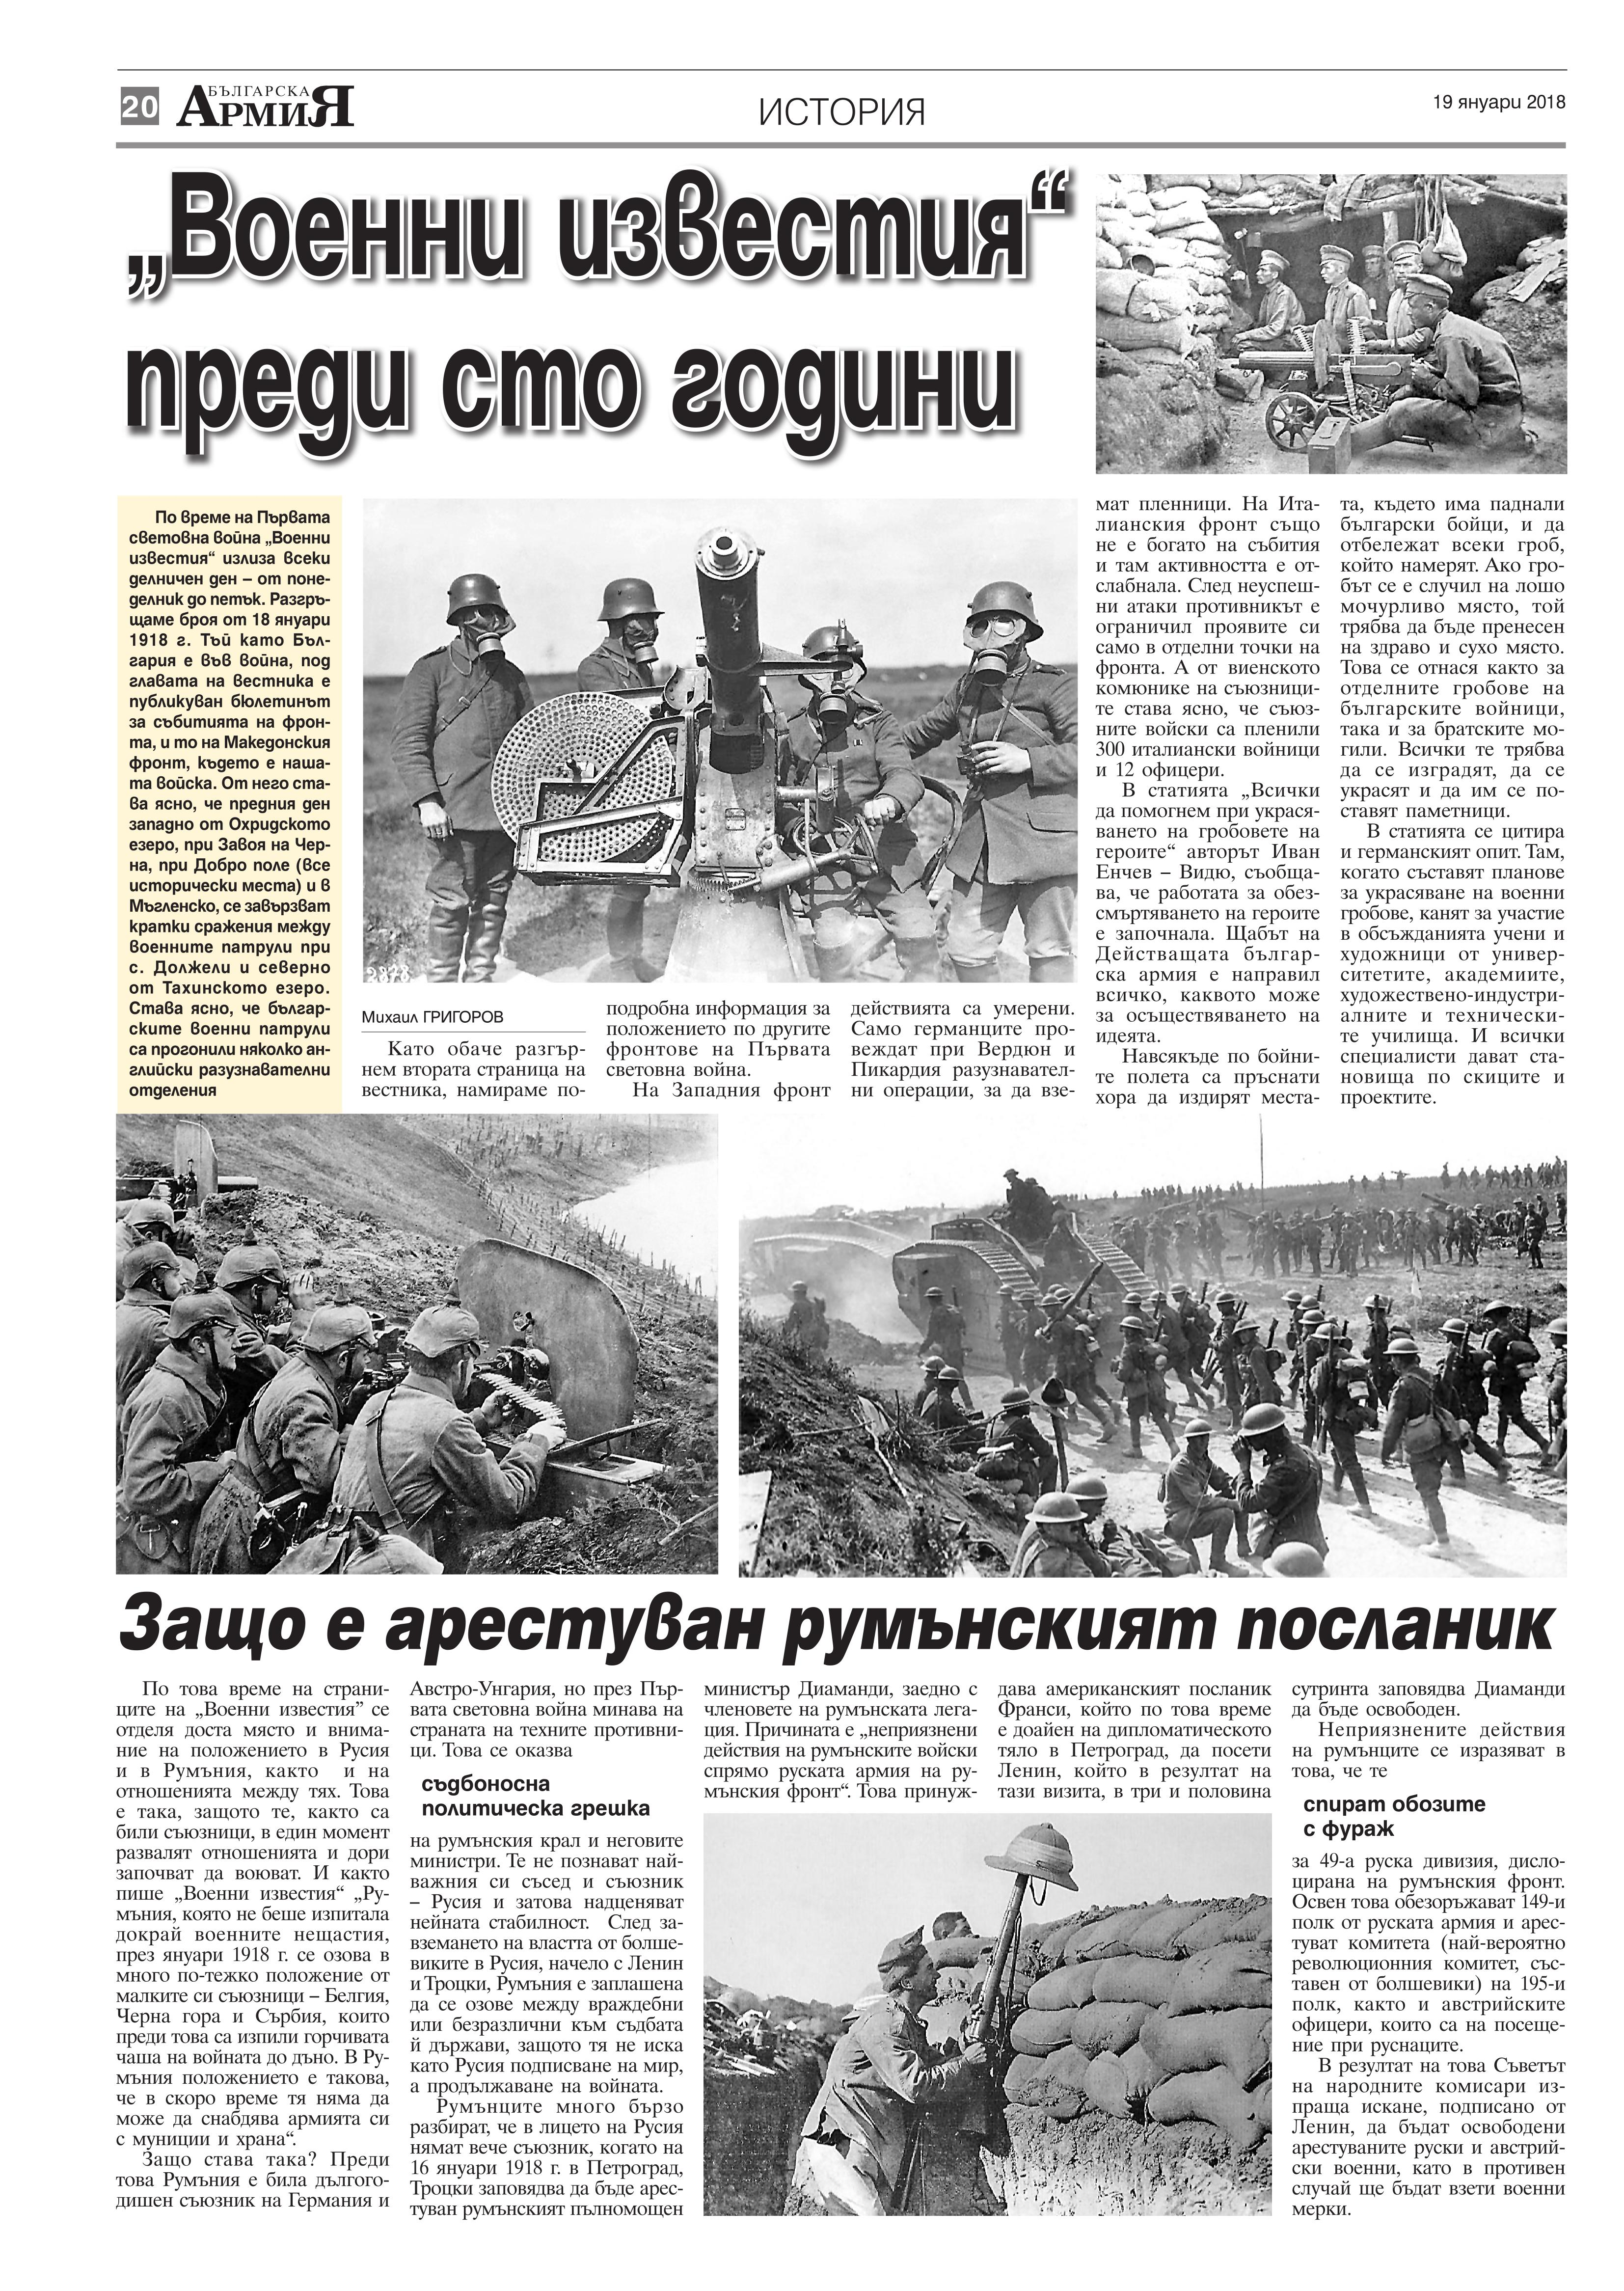 https://armymedia.bg/wp-content/uploads/2015/06/20.page1_-37.jpg